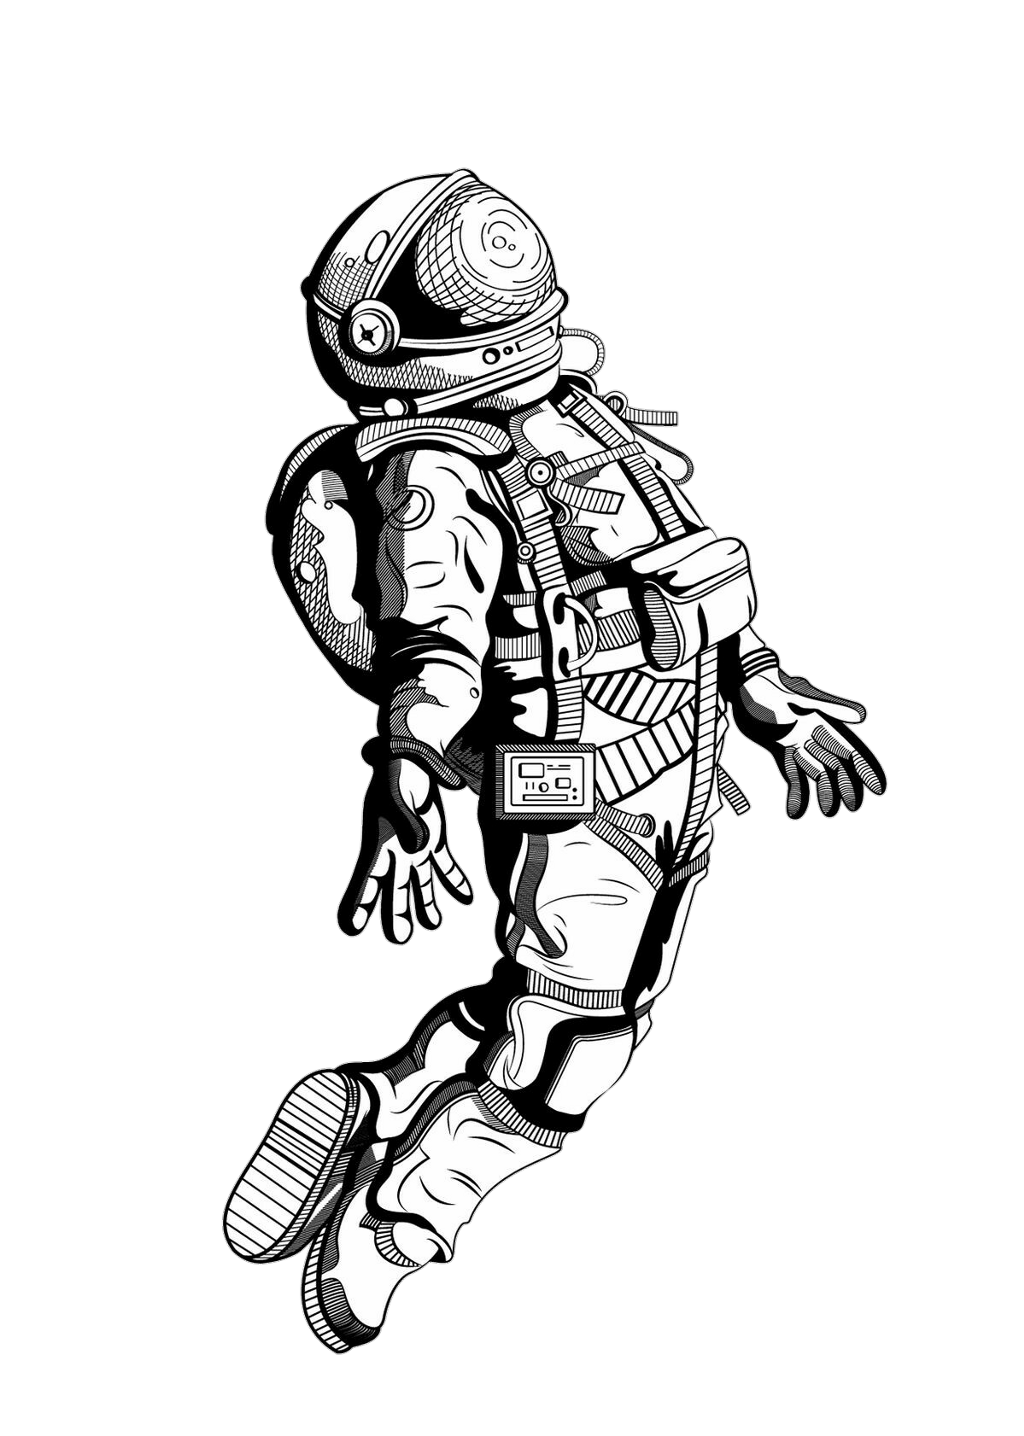 Pin By On Space Art Graphics Astronaut Tattoo Astronaut Art Tattoo Sketches